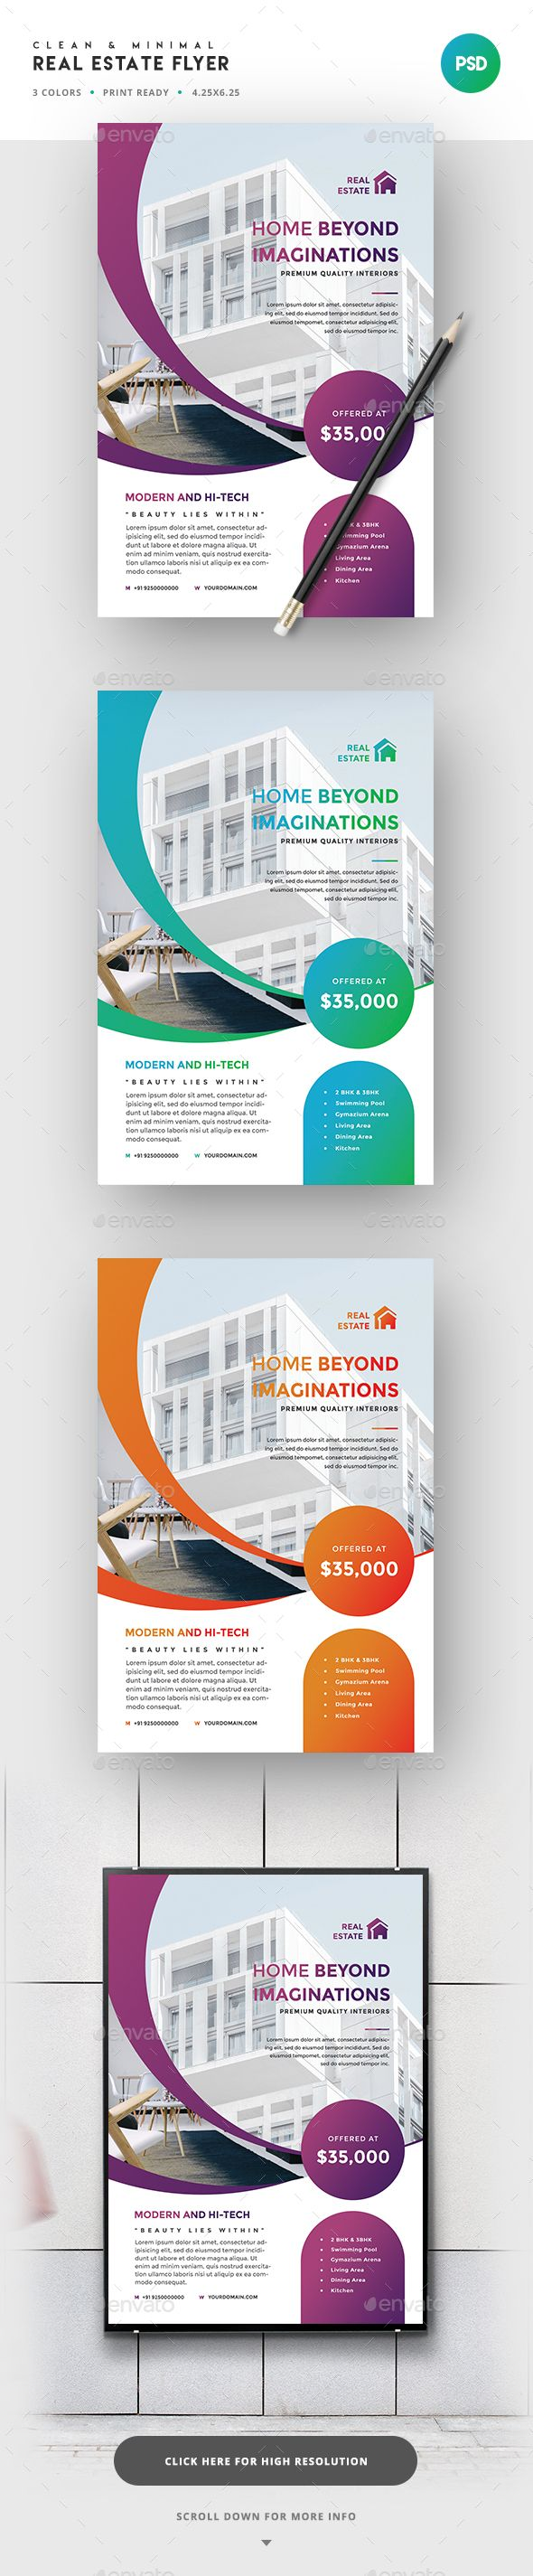 House for sale real estate flyer amp ad template word amp publisher - Real Estate Flyer Template